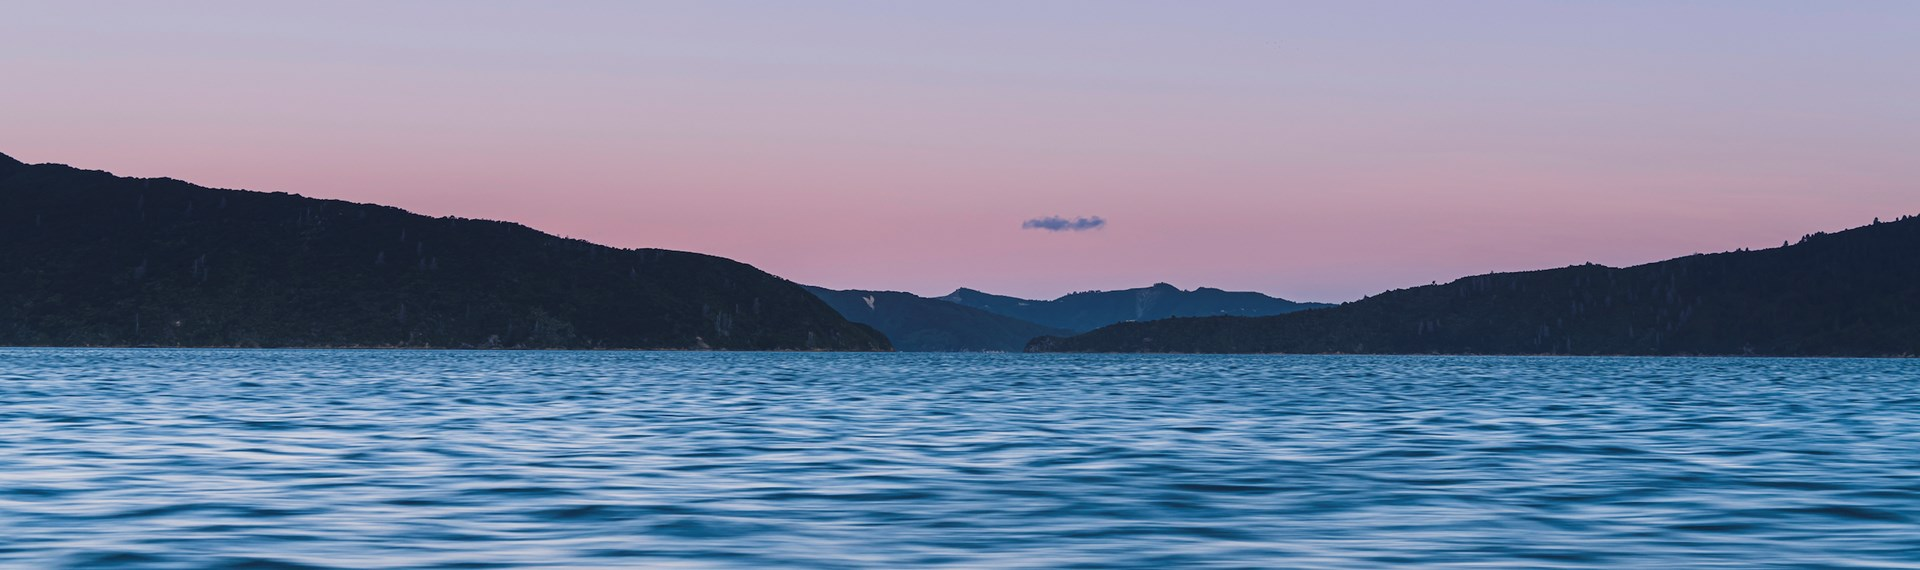 The Marlborough Sounds water, hills and full moon at sunset, Marlborough, New Zealand.